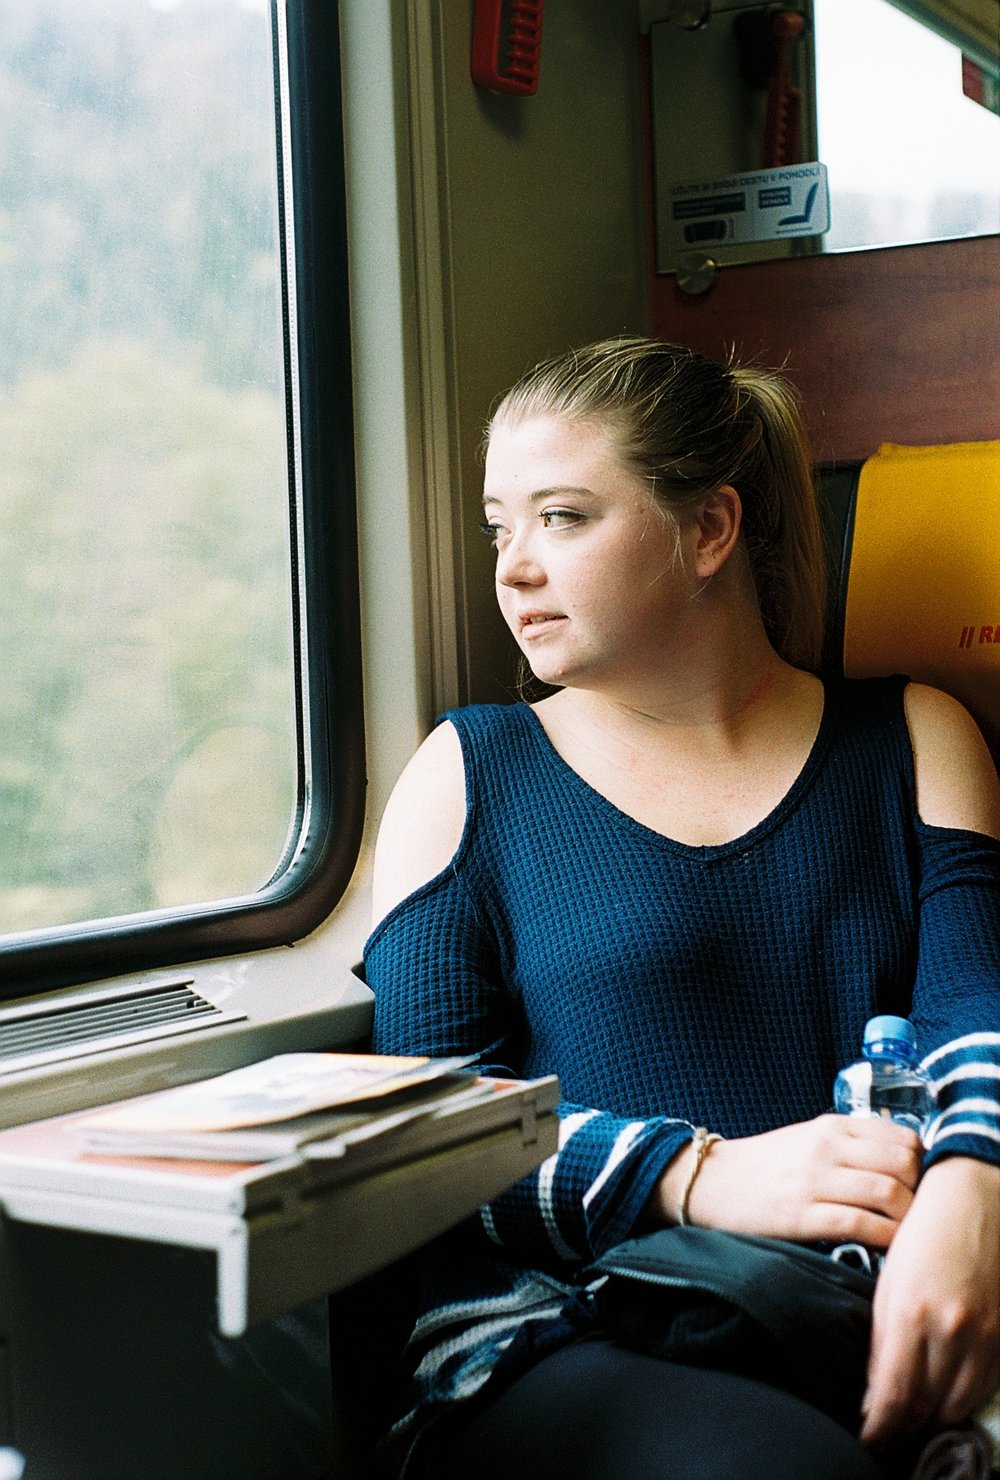 Amanda Daily on the RegioJet train to Ostrava, Czech Republic.